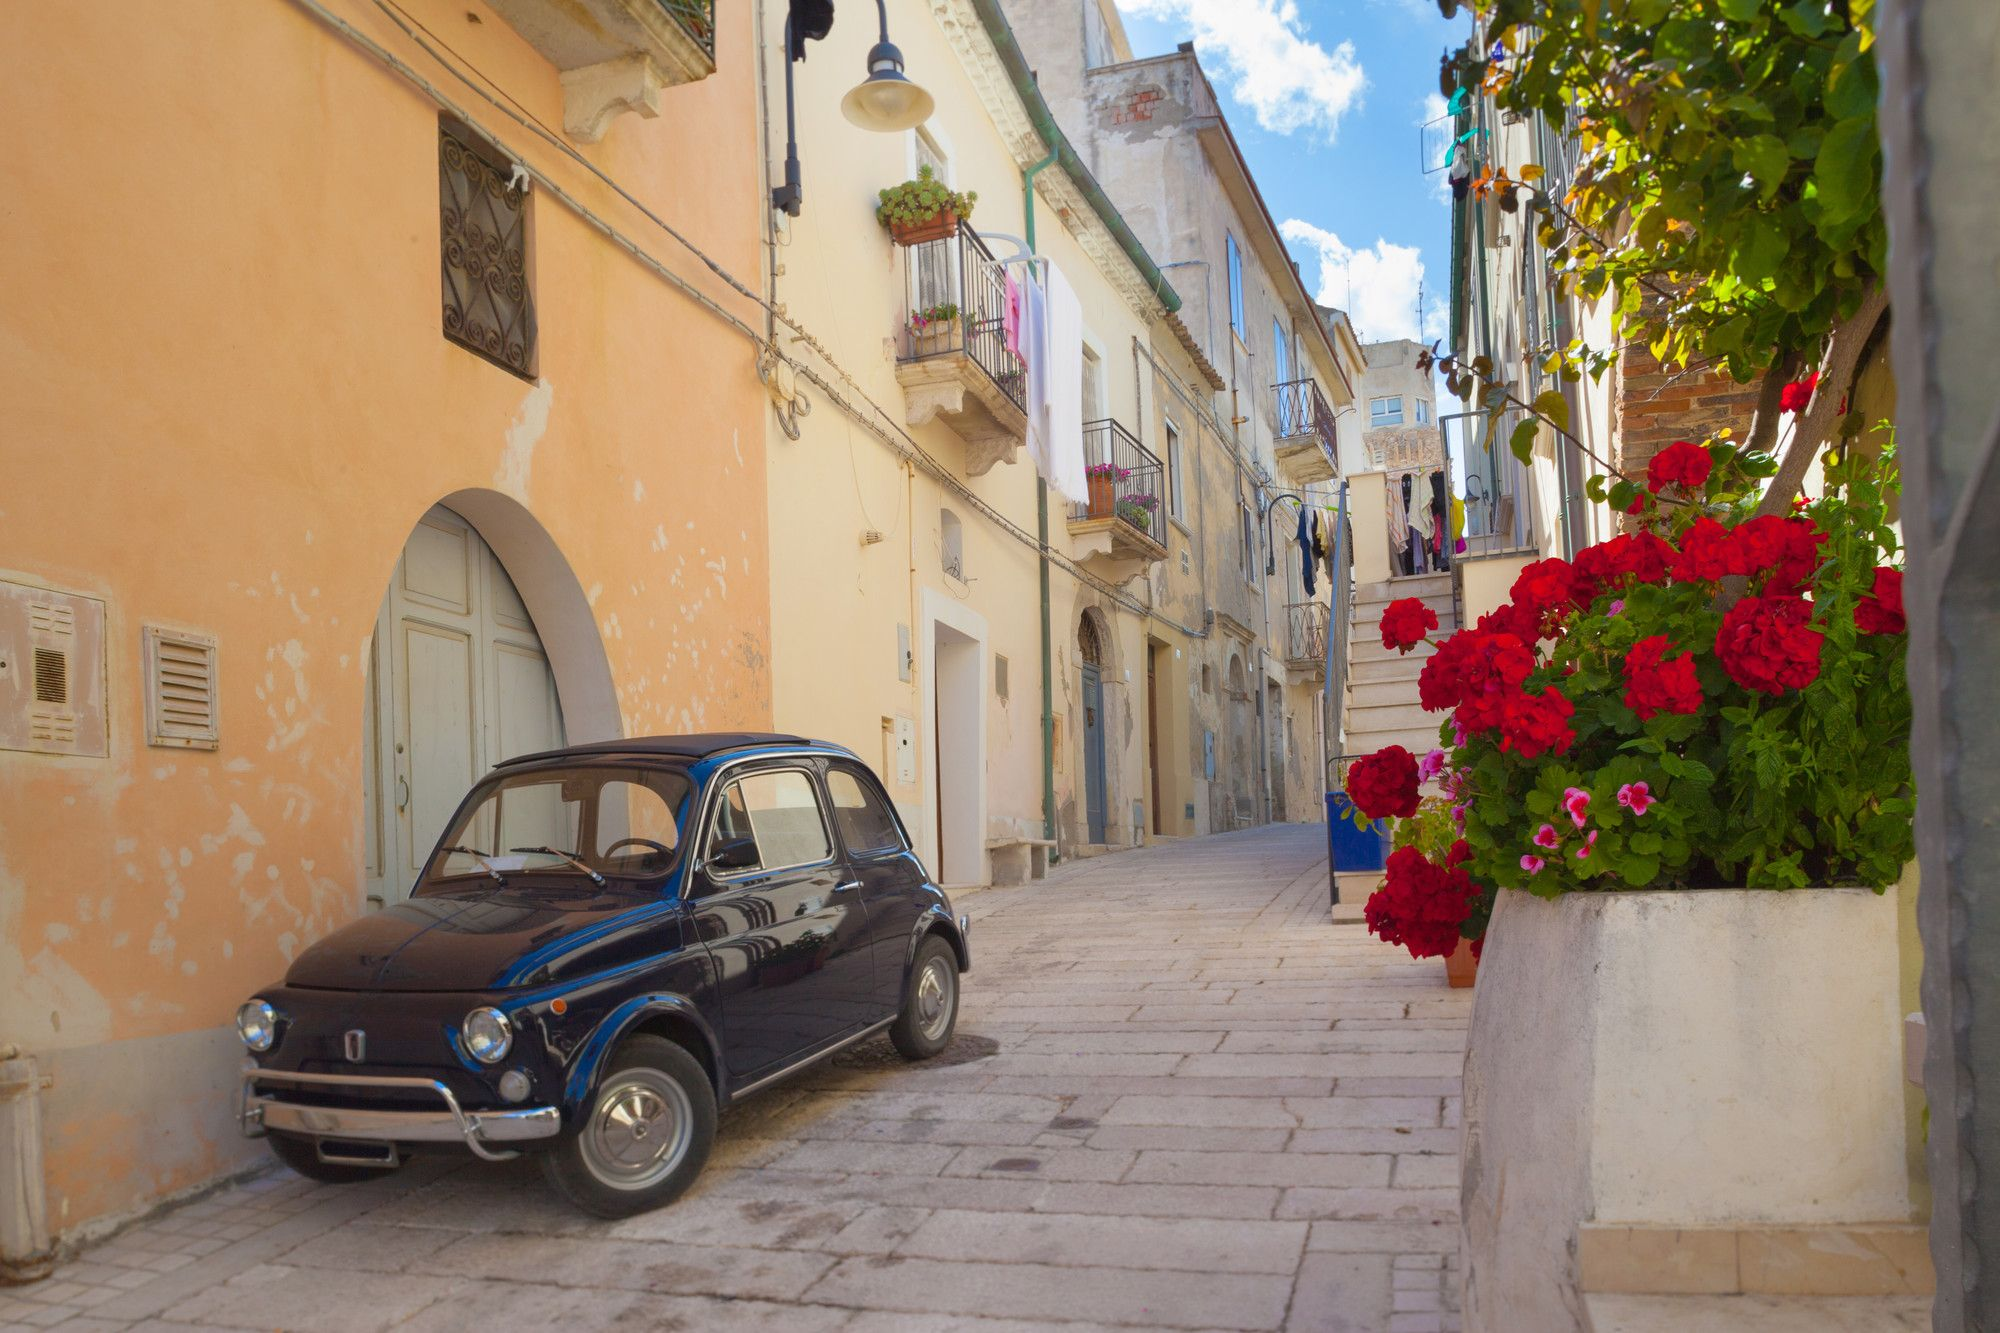 Beautiful towns in Southern Italy. What better way to visit this country than by staying at a thermal spa hotel with natural spring water and healing natural mud ❤ Learn about the 10 best spa hotels in Italy on our blog ❤ - - - - - - - - - - #daydreaming #luxurytravel #swimming #islands #seaside #motivation #travel #honeymoon #thalassotherapy #holidayoffers #naples #italyholidays #italyspas